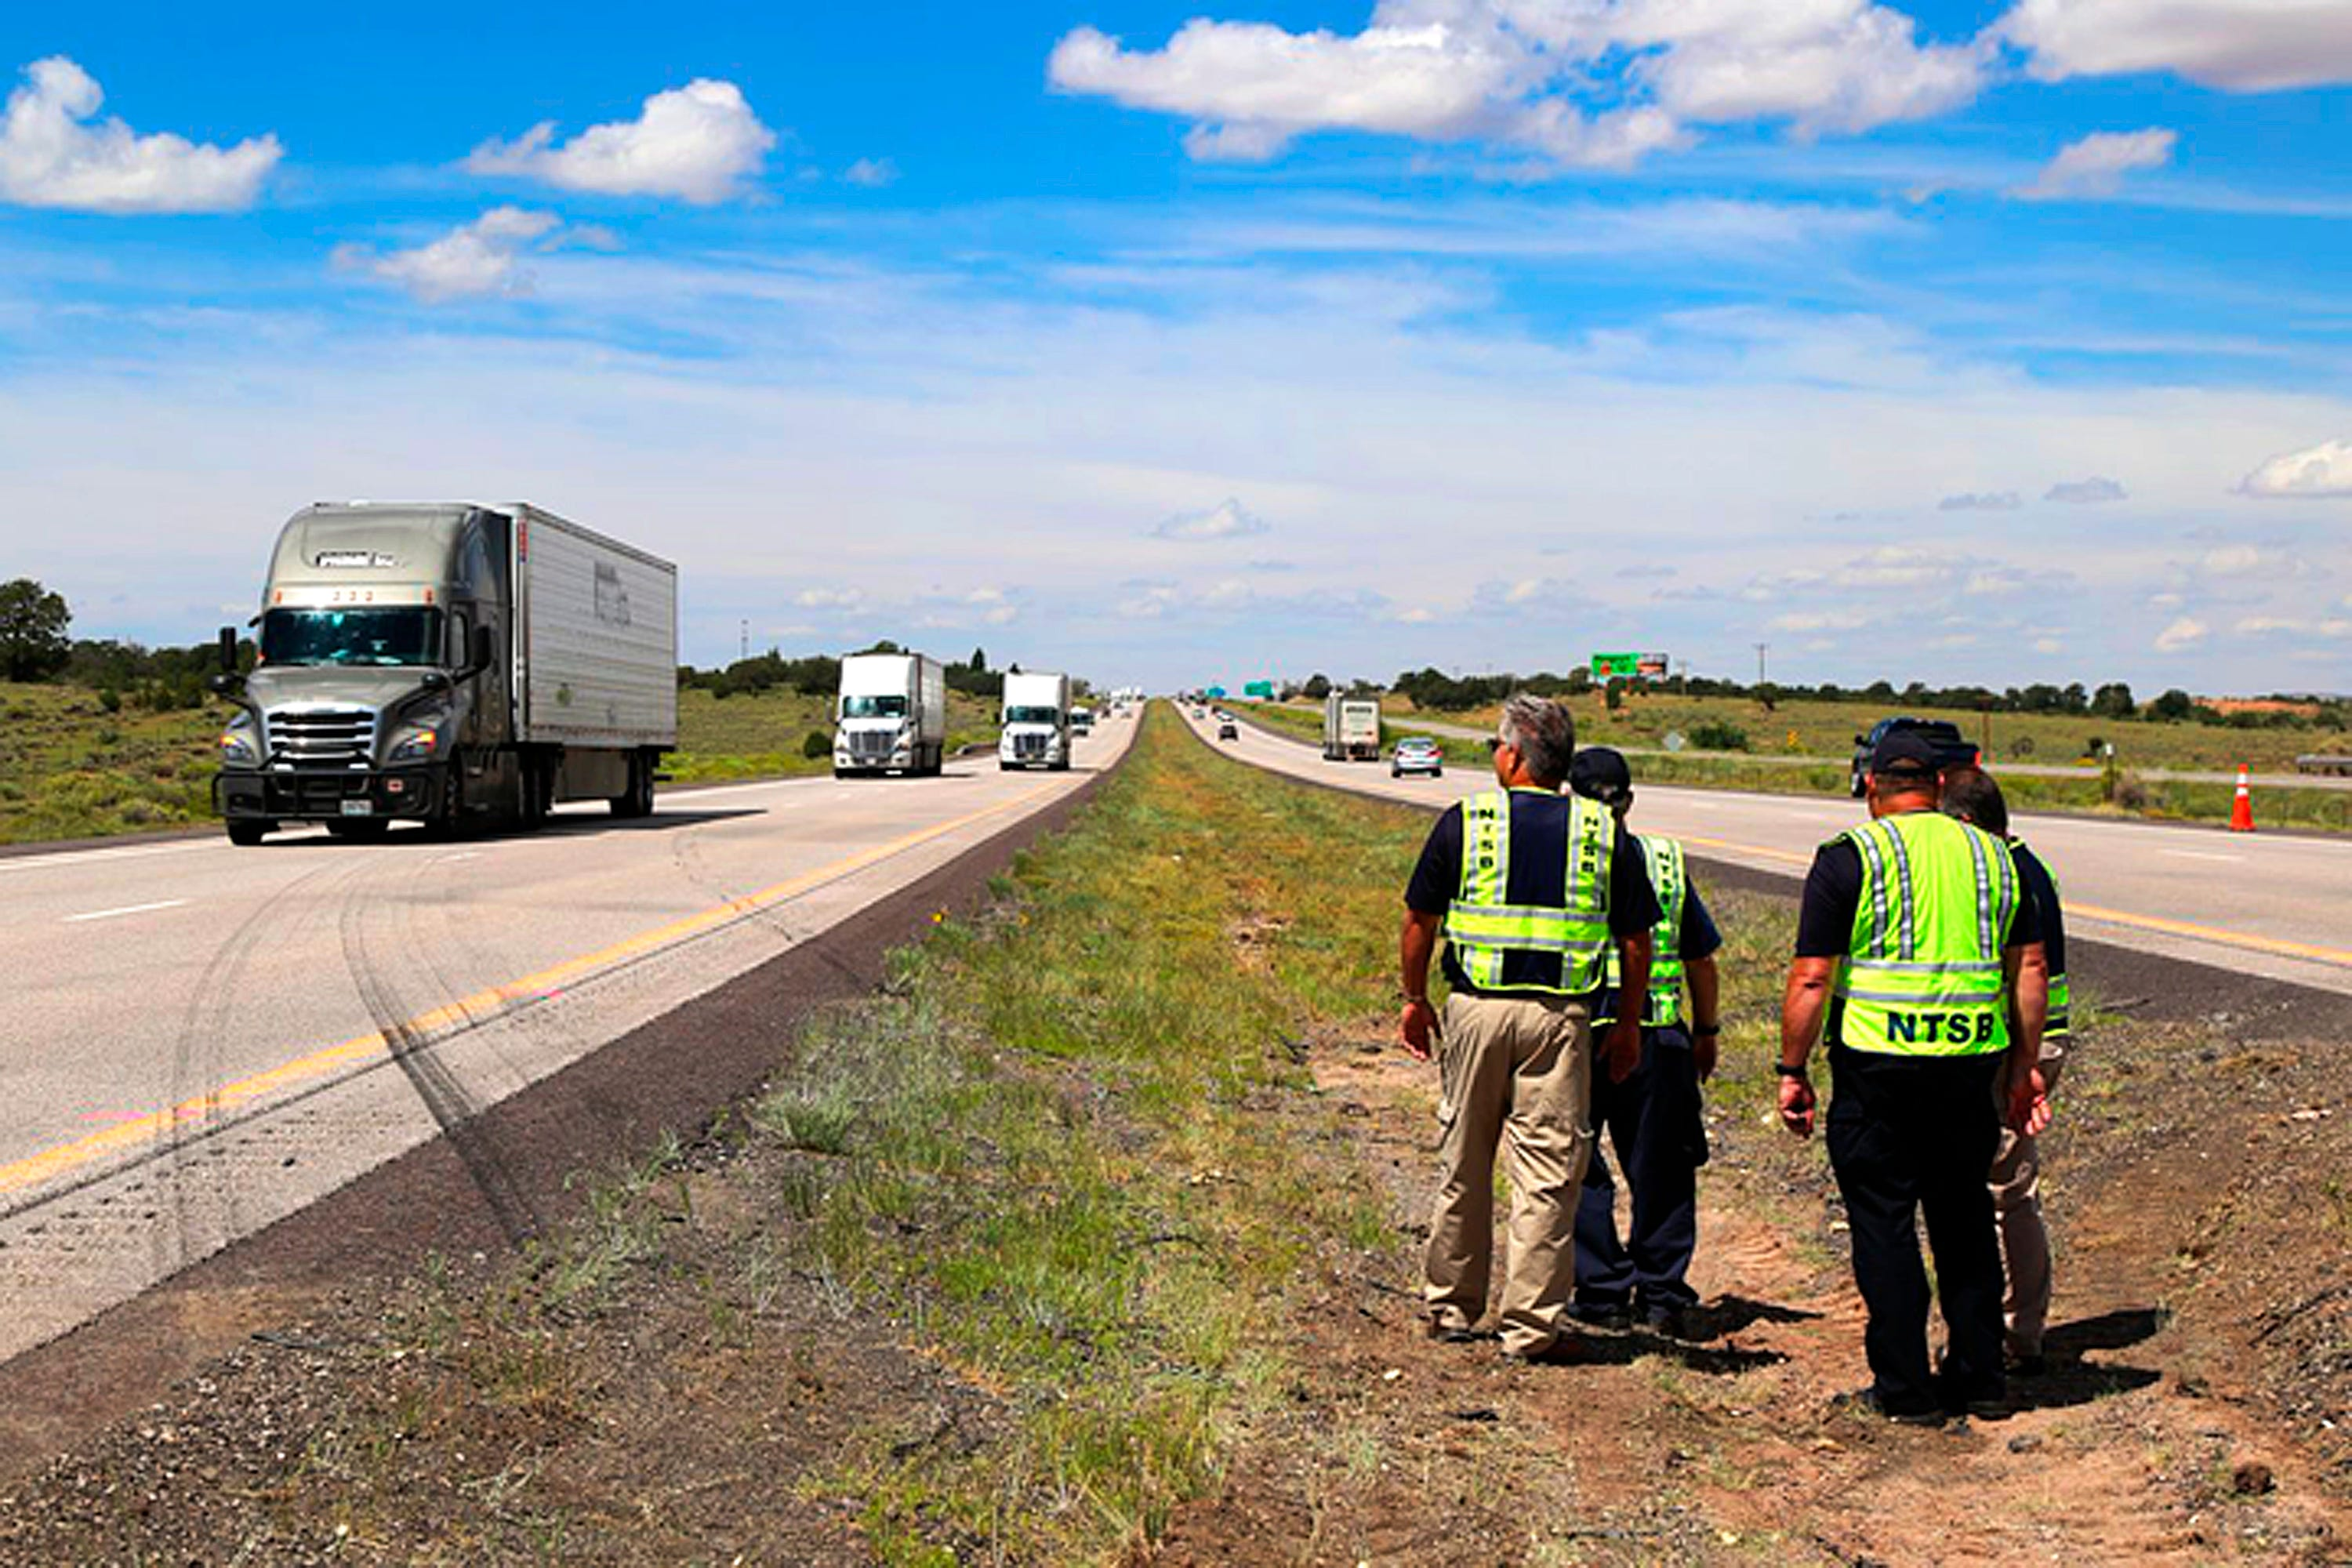 This photo provided by the National Transportation Safety Board shows investigators Friday, Aug. 31, 2018, viewing skid marks left by an eastbound big rig when it blew a tire, crossed the median of Interstate 40 and crashed head-on into a westbound Greyhound bus Thursday near Thoreau, N.M. Children were among the dozens of passengers seriously injured in the crash that killed eight people, hospital officials said.